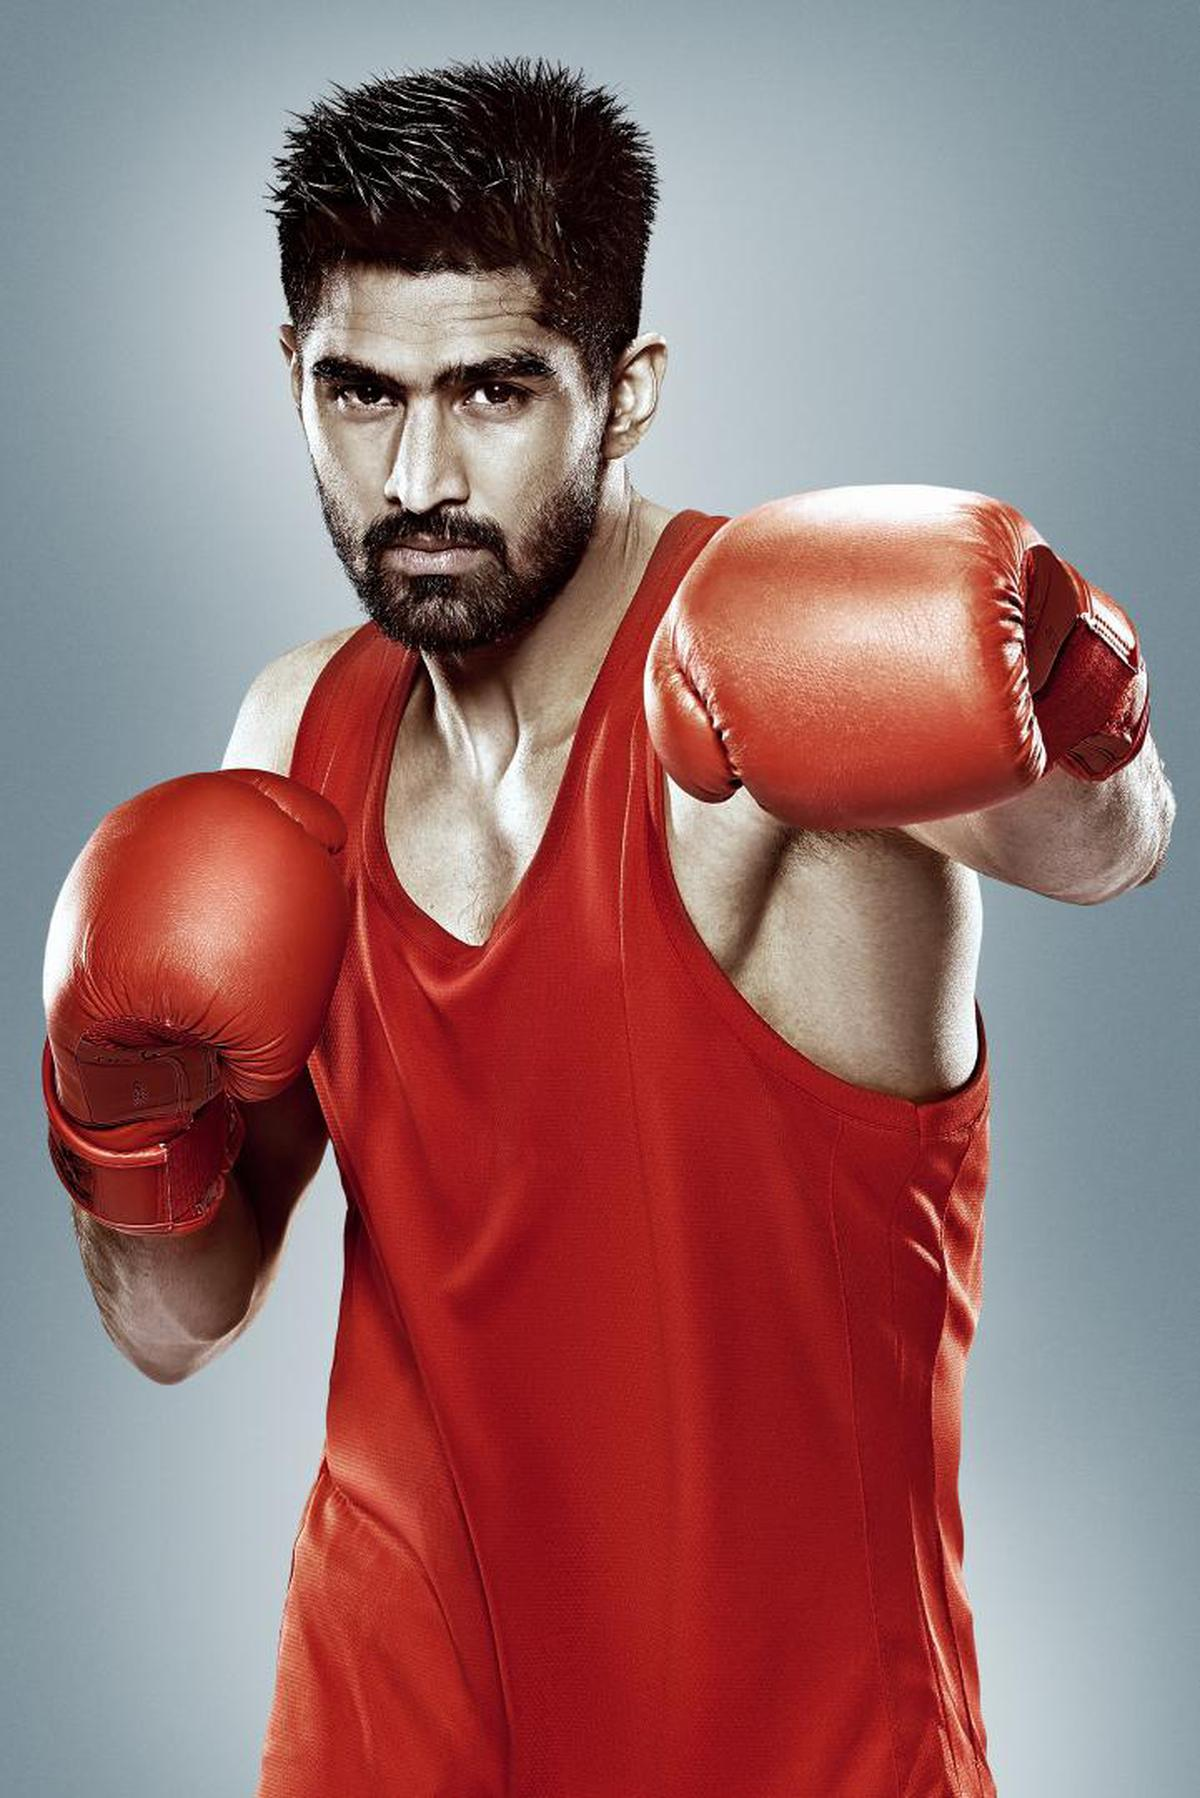 Image of Professional boxer, Professional boxing, Boxing, Boxing glove etc.